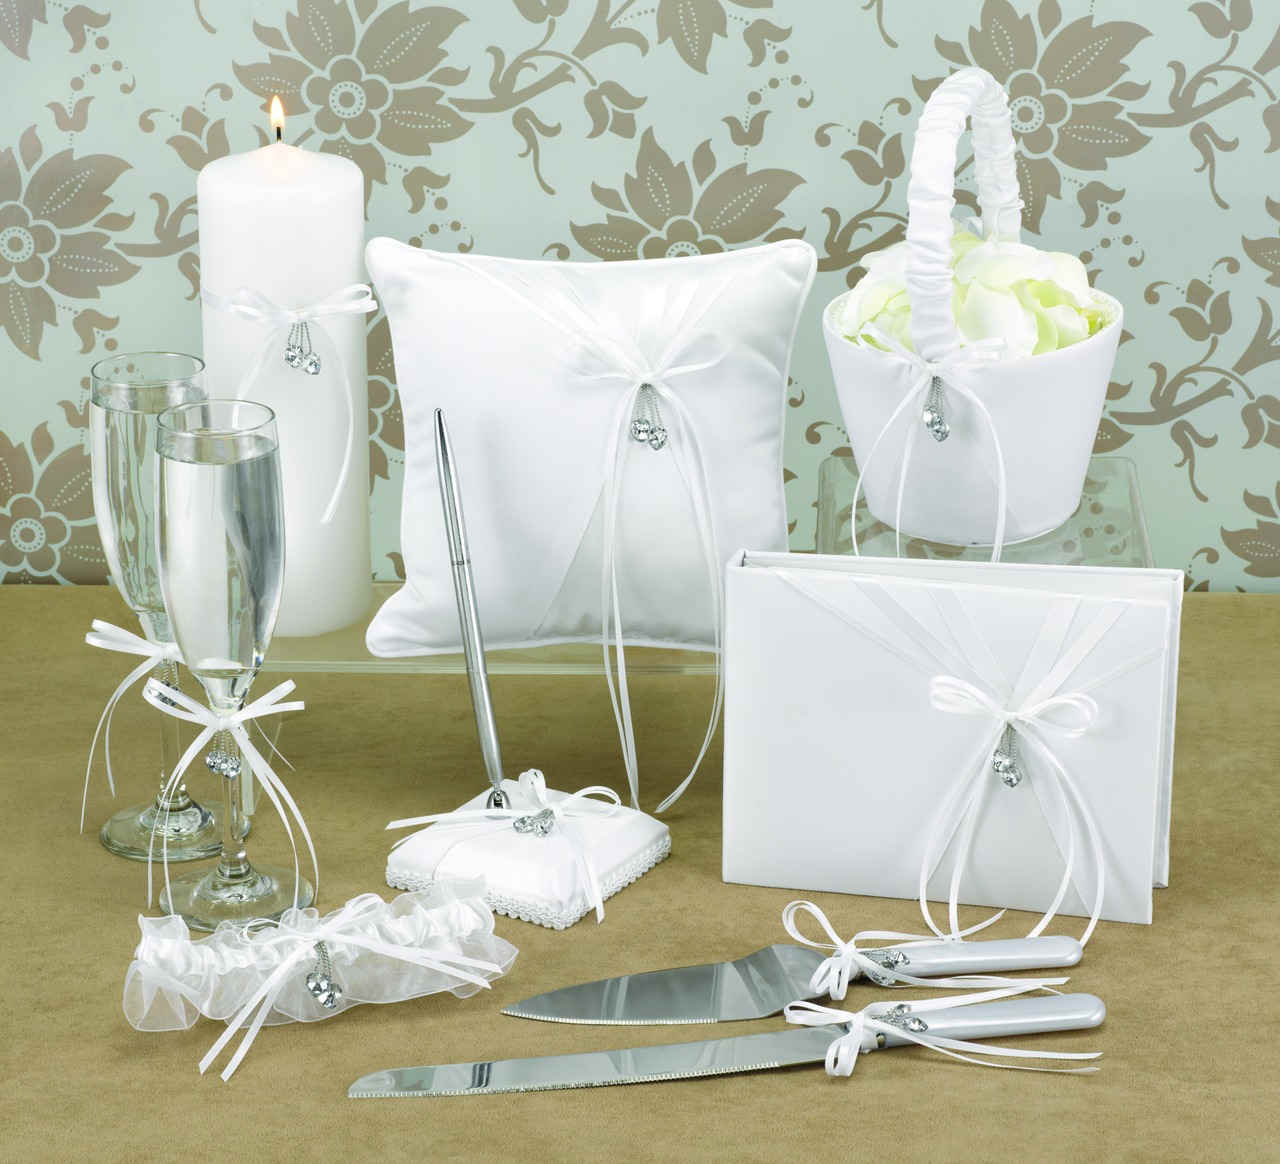 wedding supplies romantic decoration